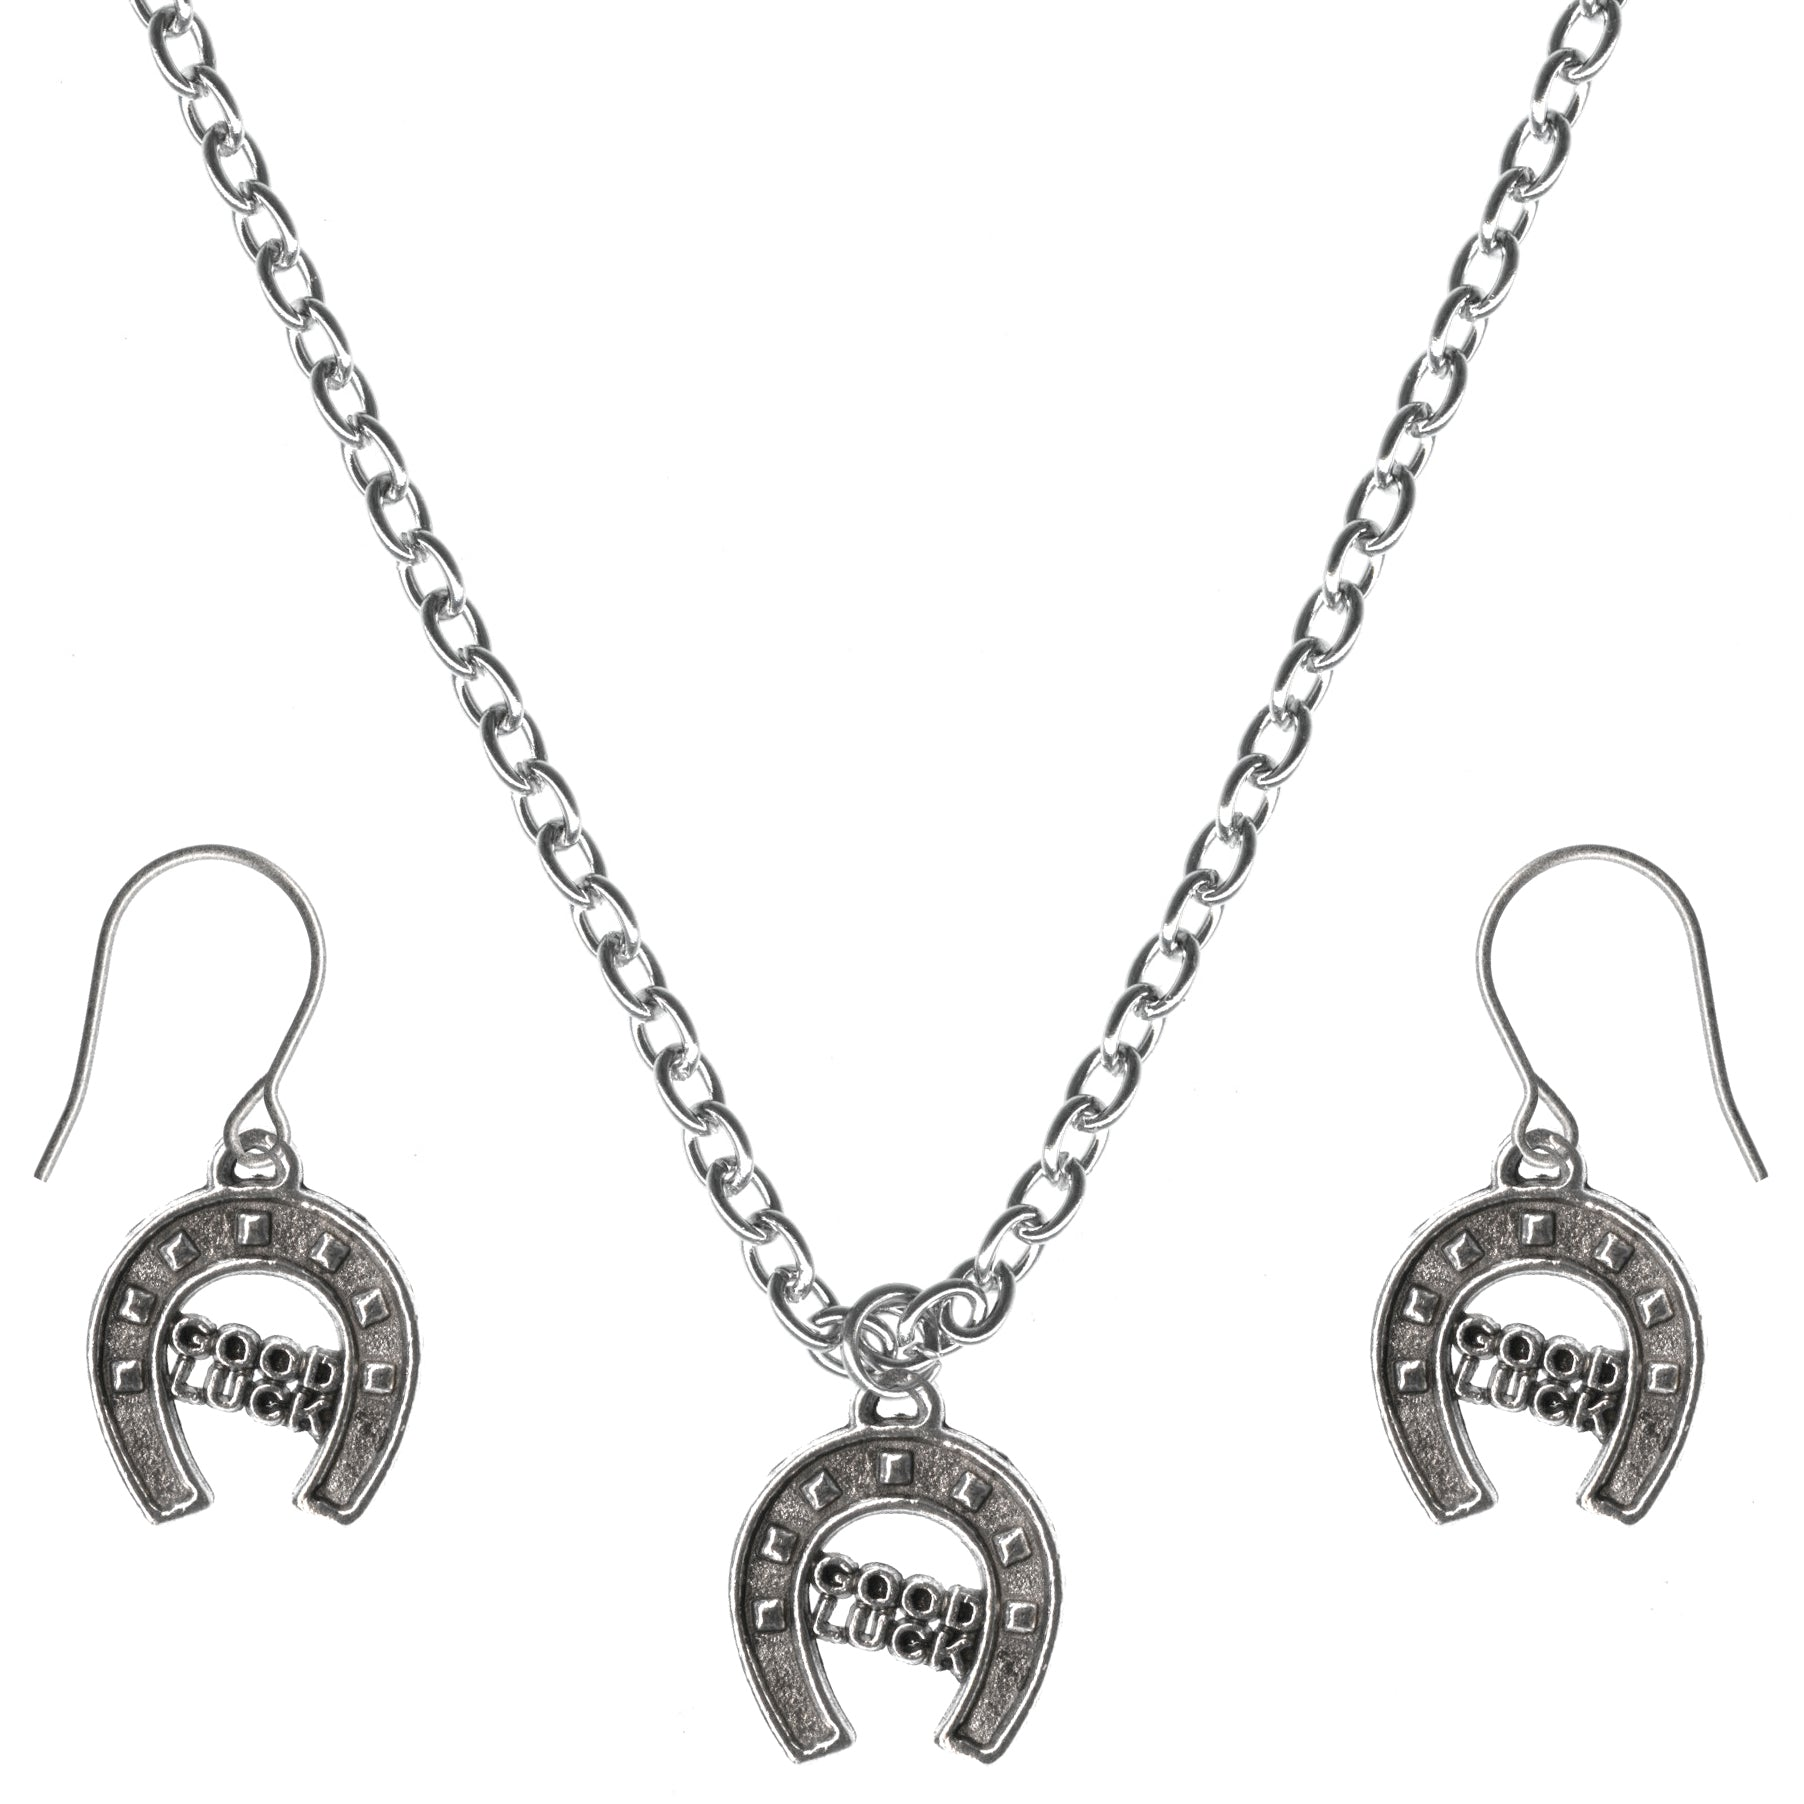 Good Luck Horseshoe Charm Steel Chain Necklace and Hypoallergenic Titanium Earrings Set